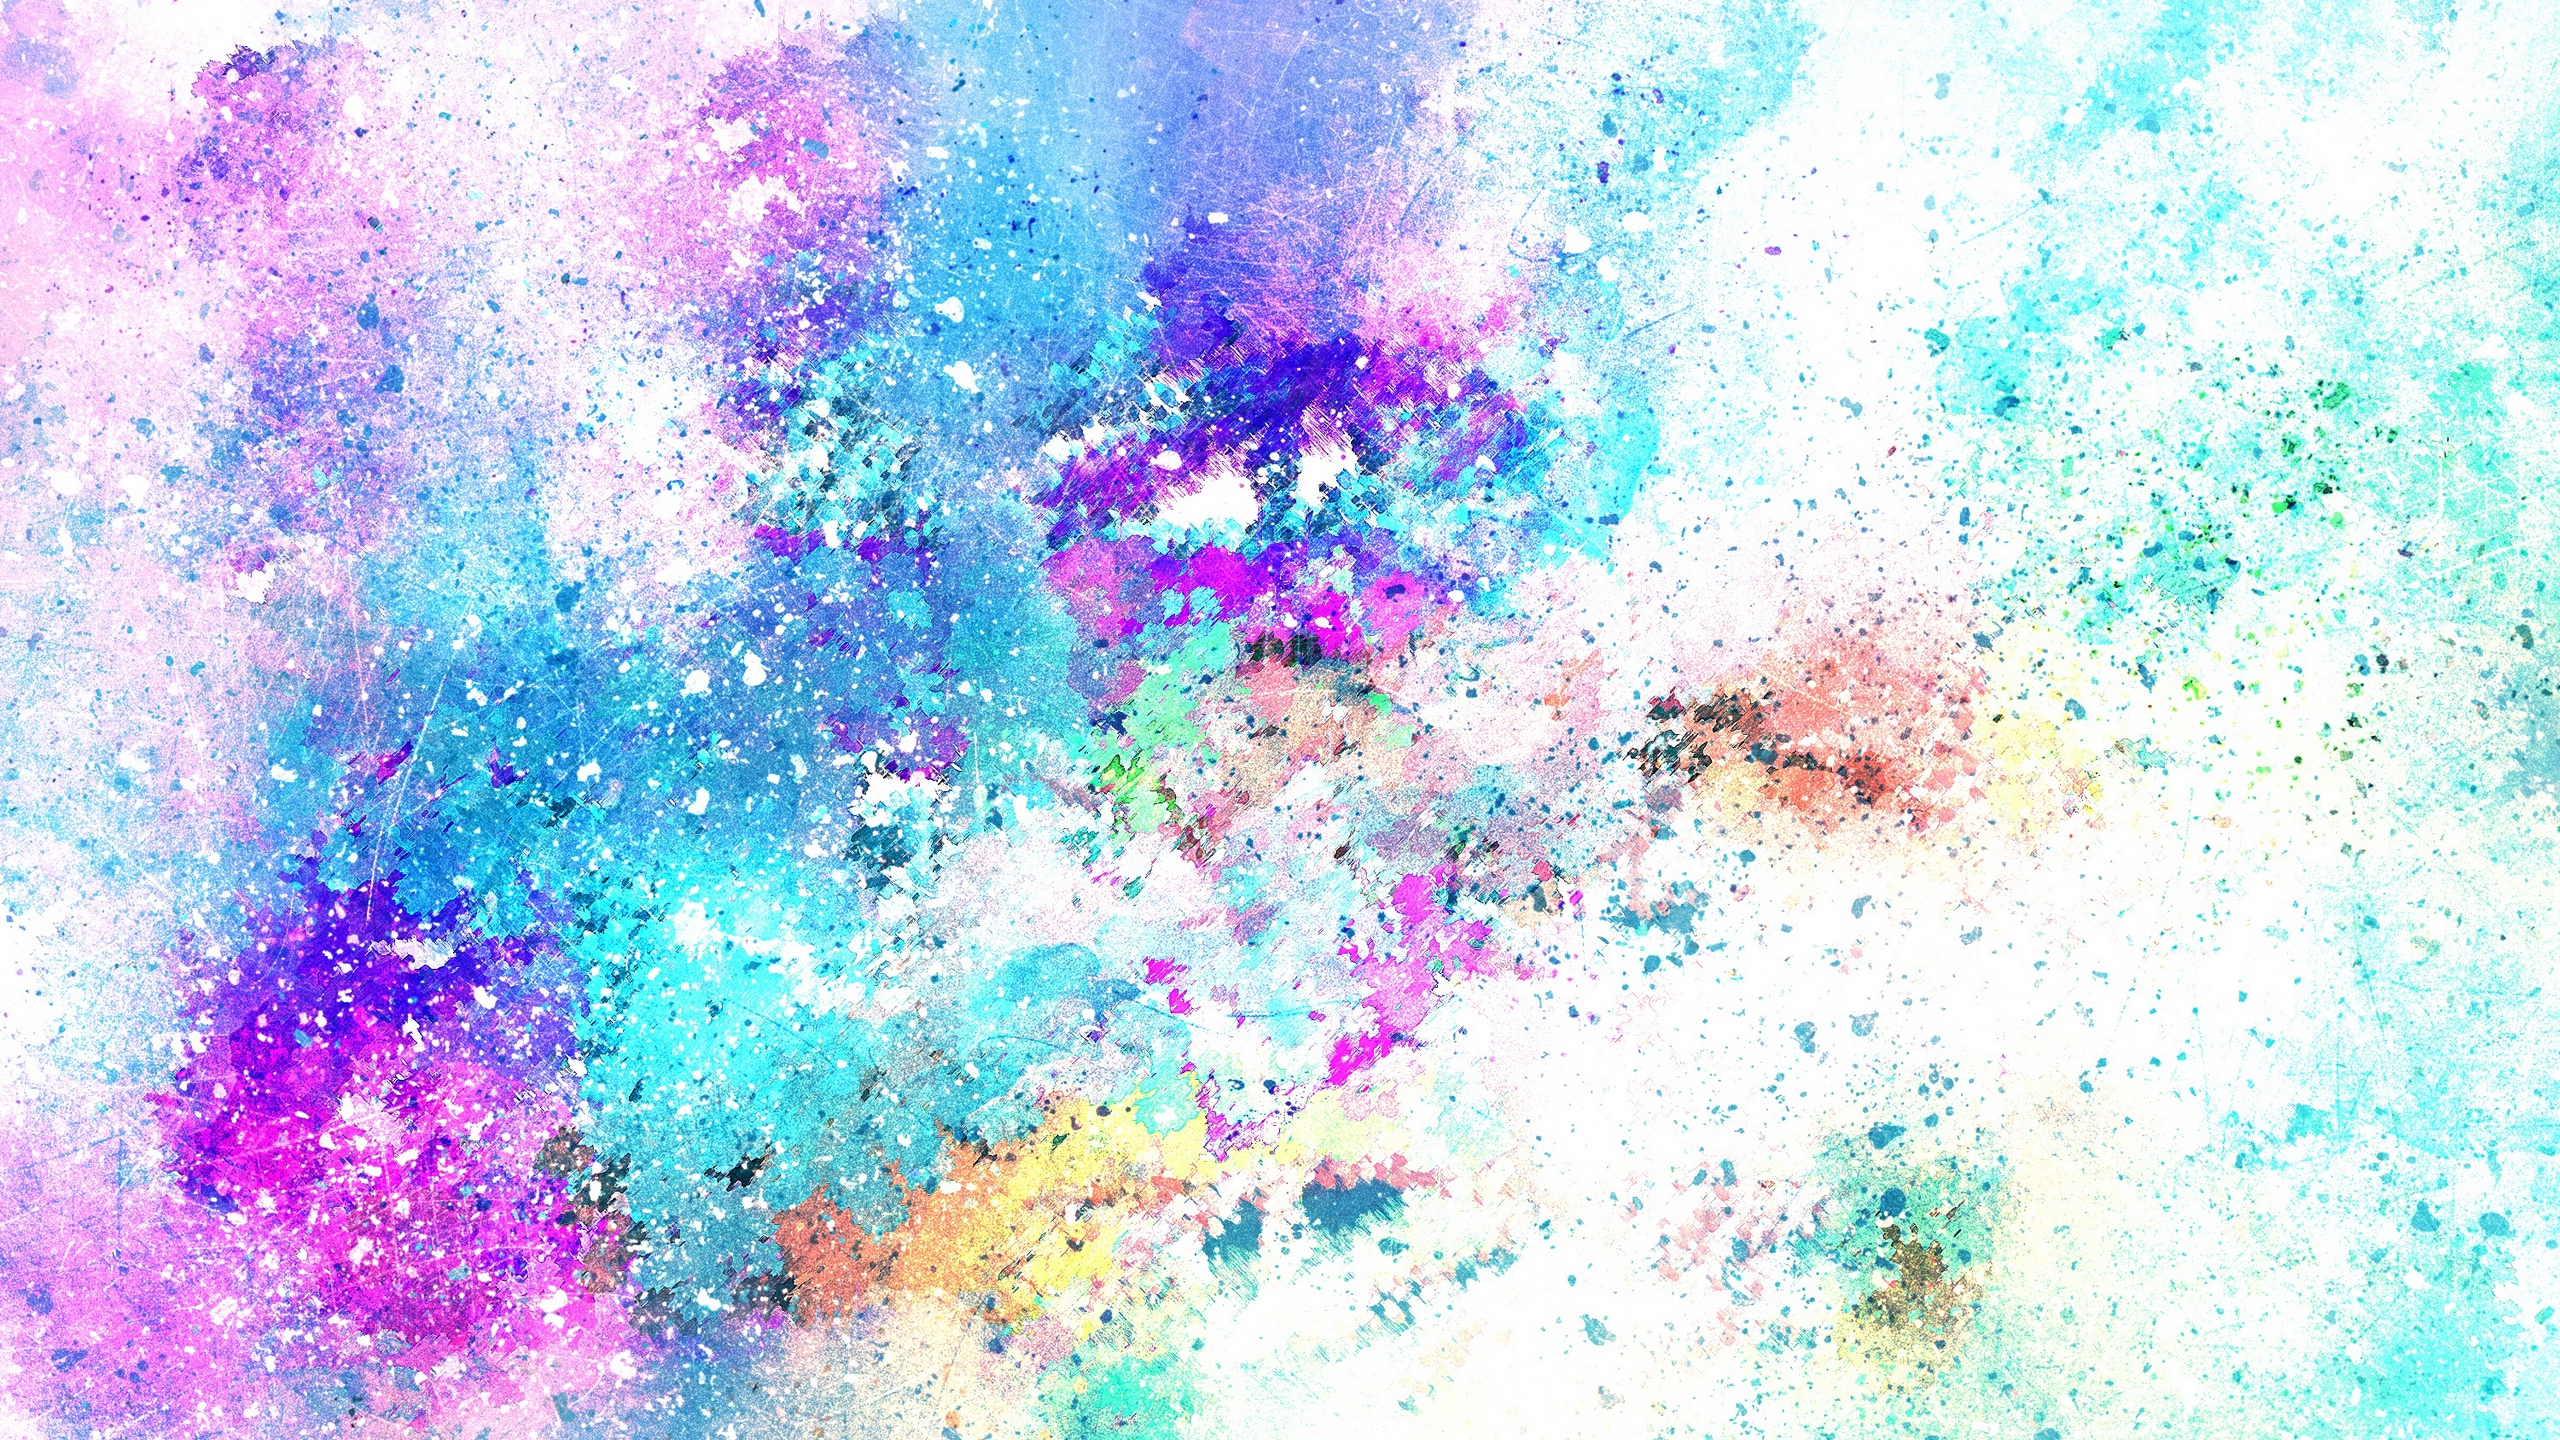 Watercolor Art Wallpaper at GetDrawings com | Free for